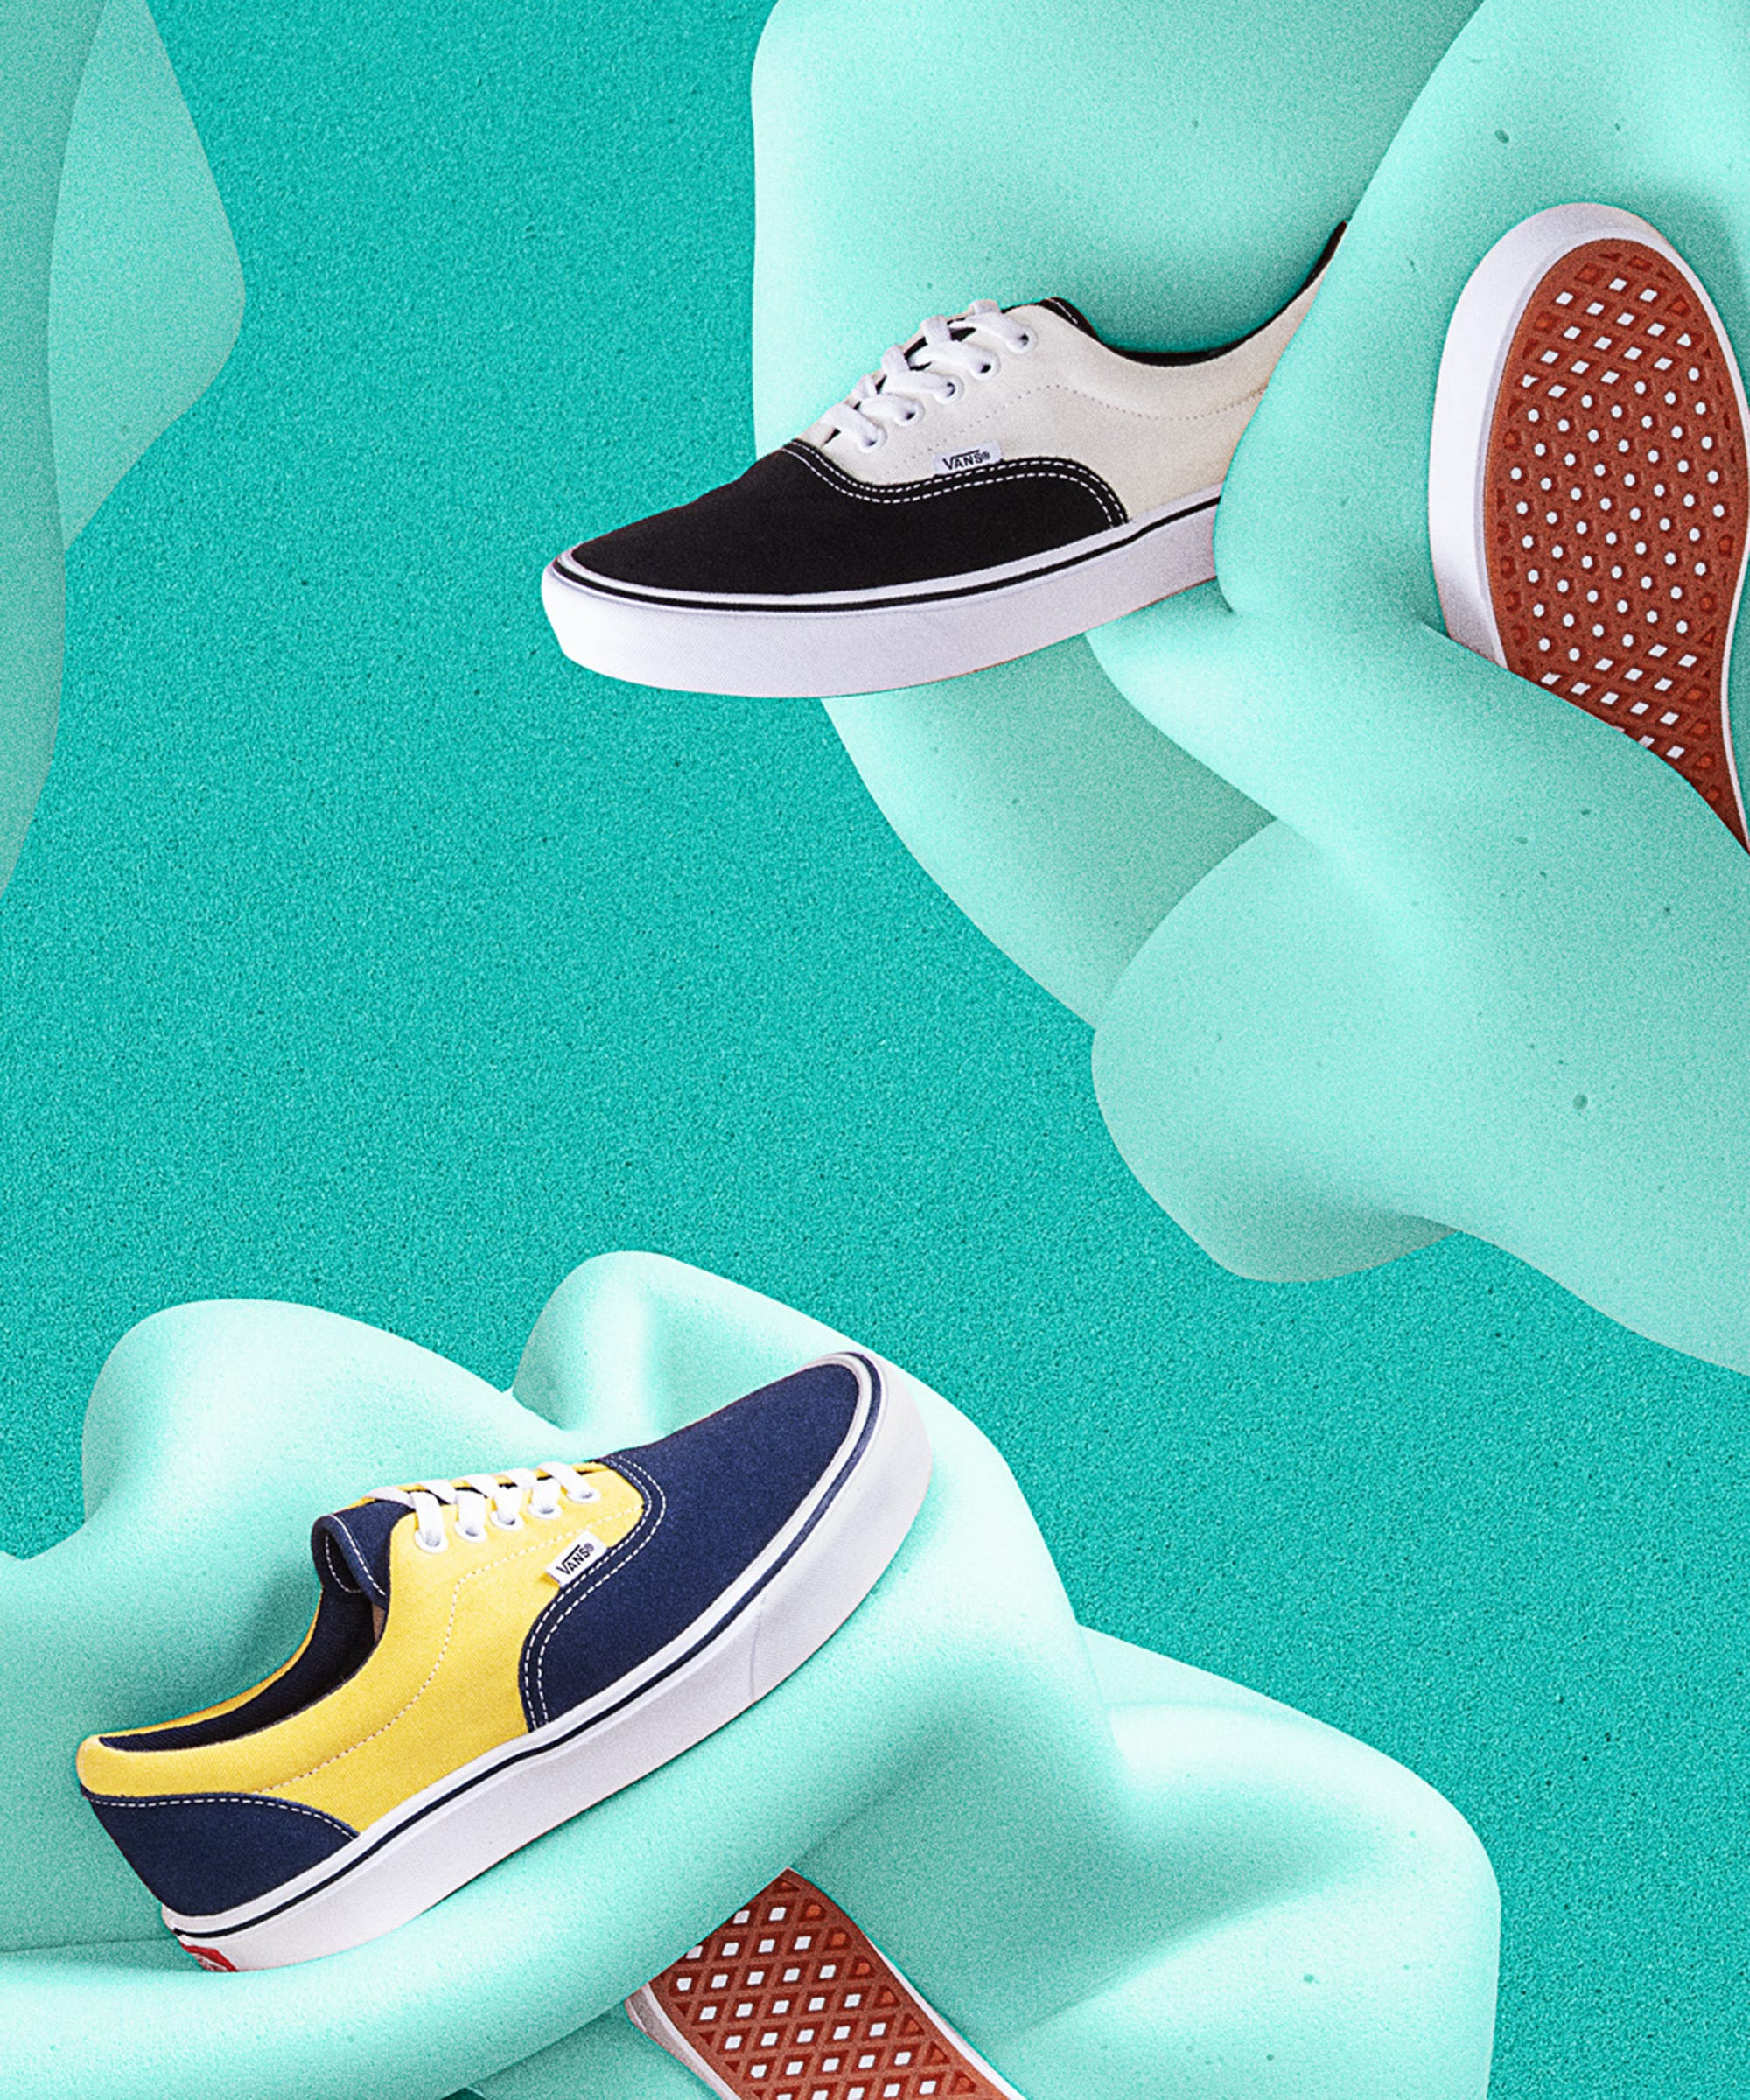 2b81c9aed9bb Vans  New ComfyCush Collection Combines Style   Comfort Like Never Before